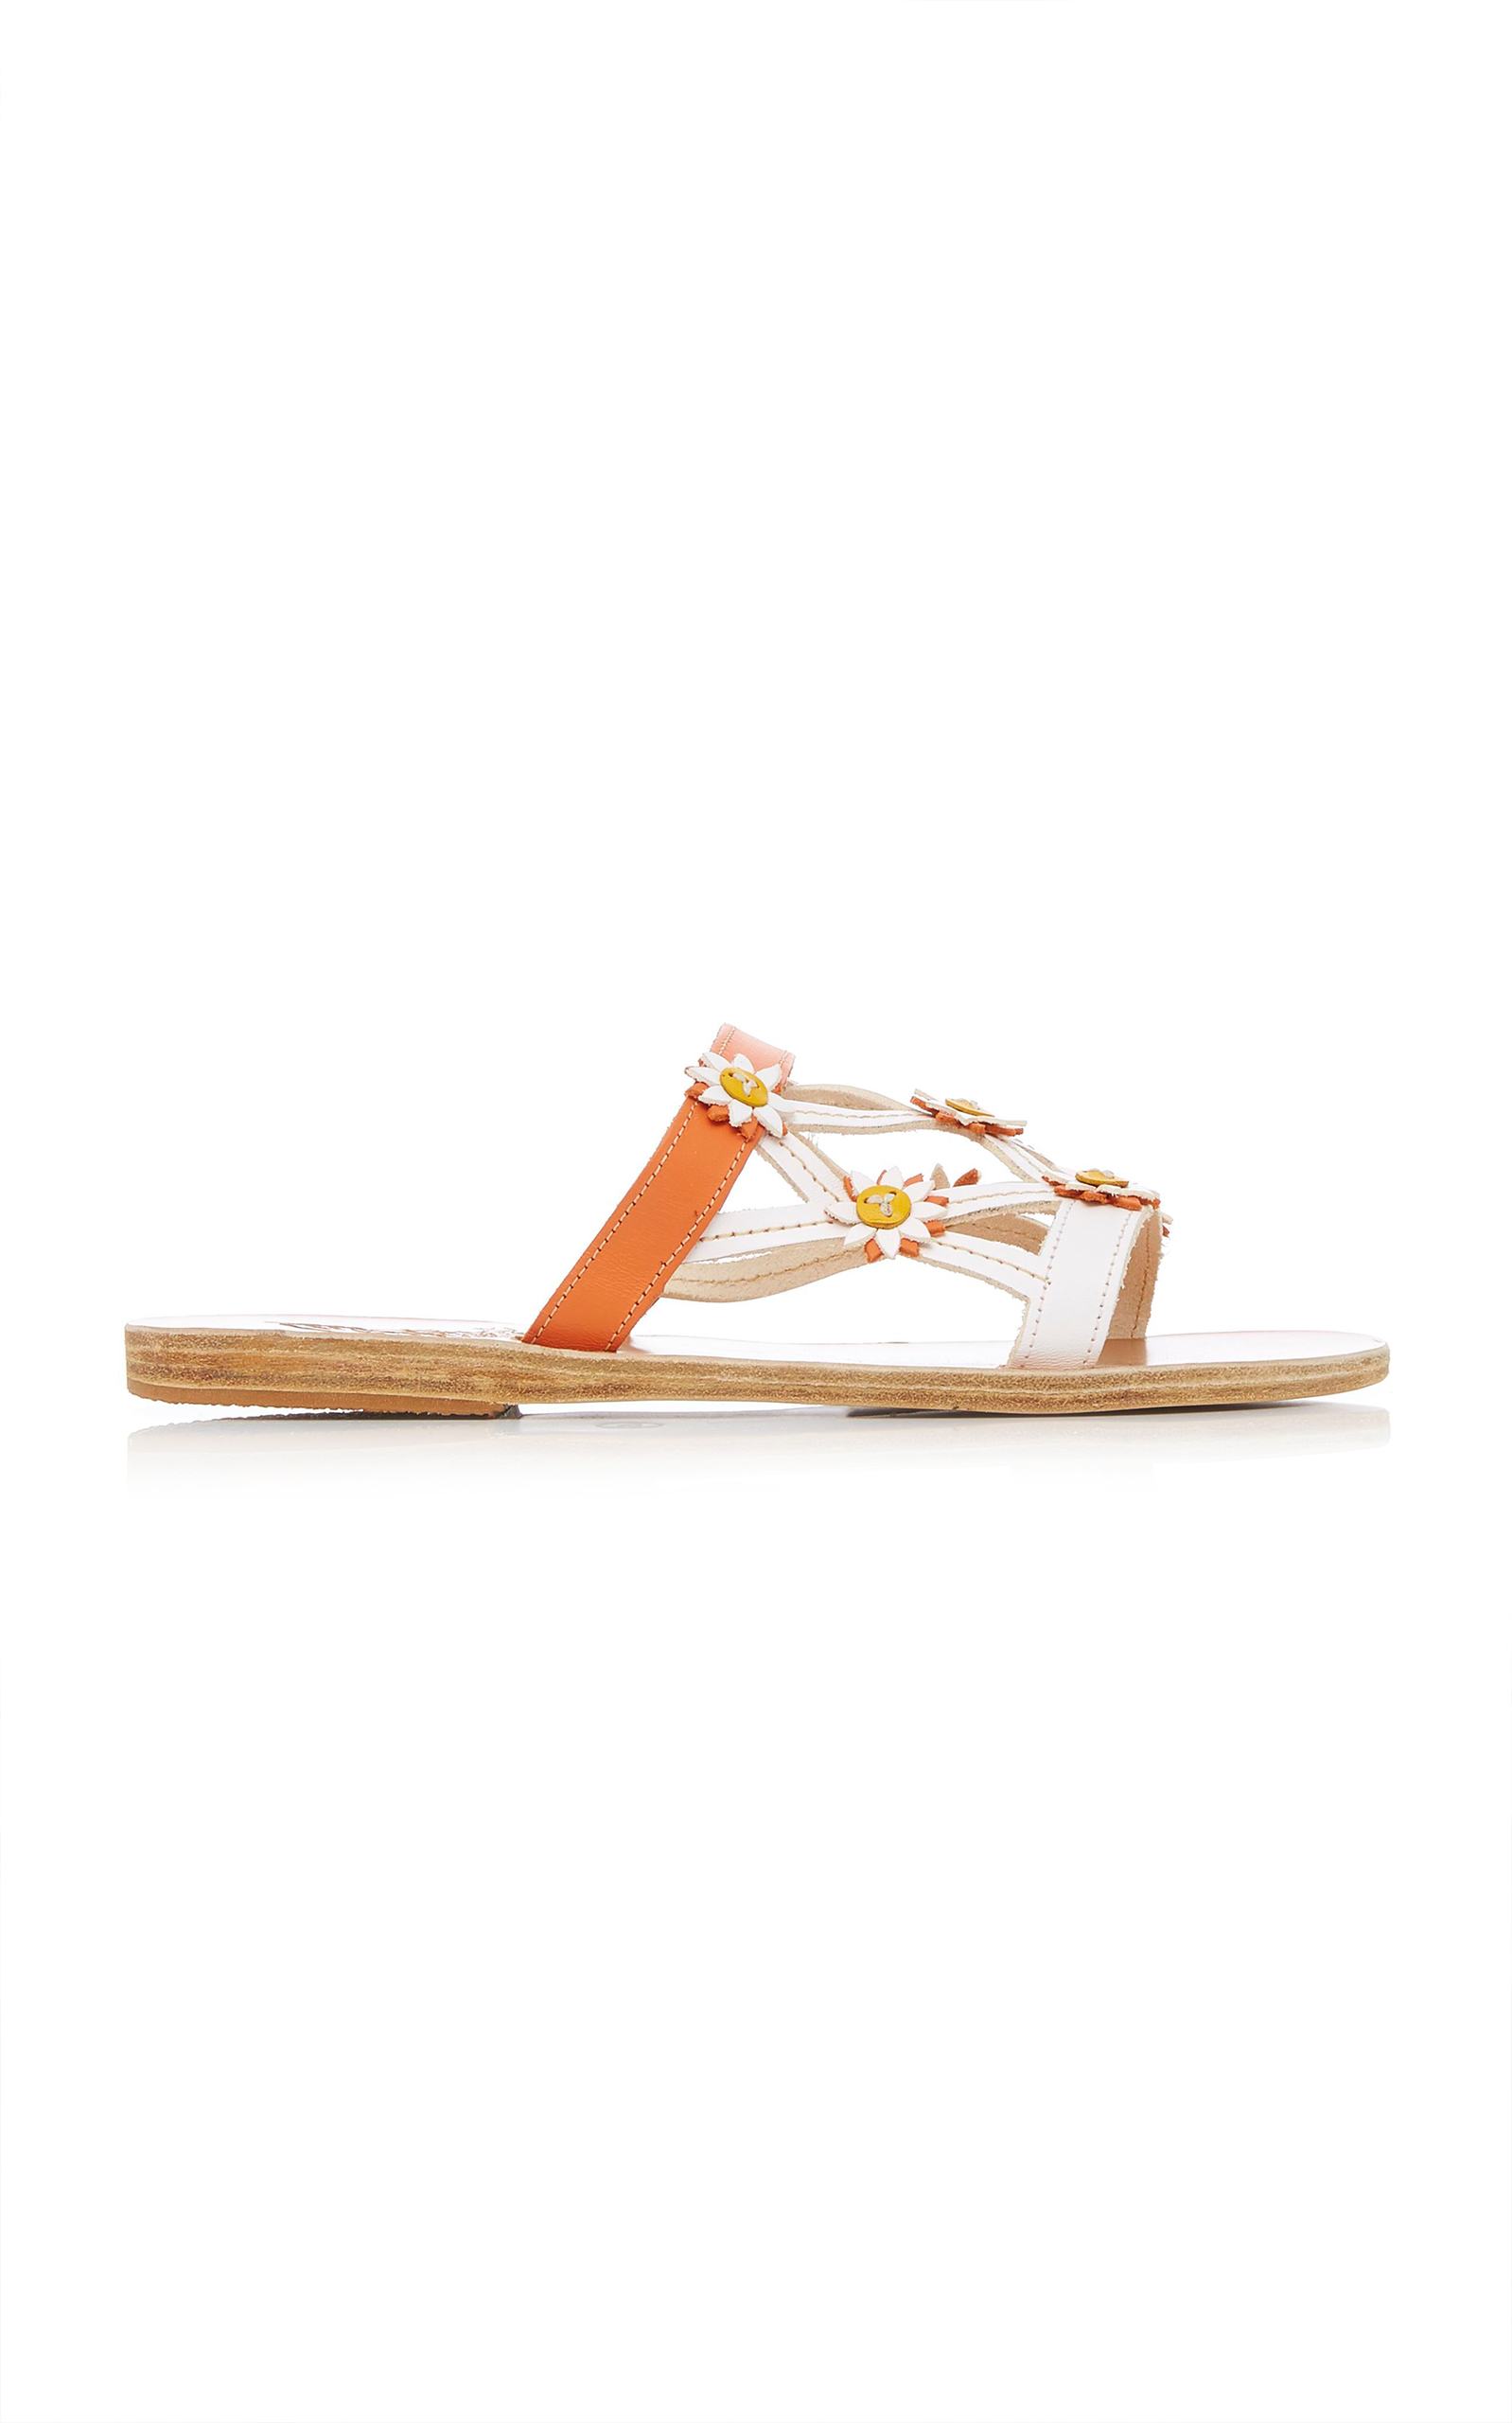 Peonia Floral-Embellished Leather Sandals Ancient Greek Sandals roELiGTXA